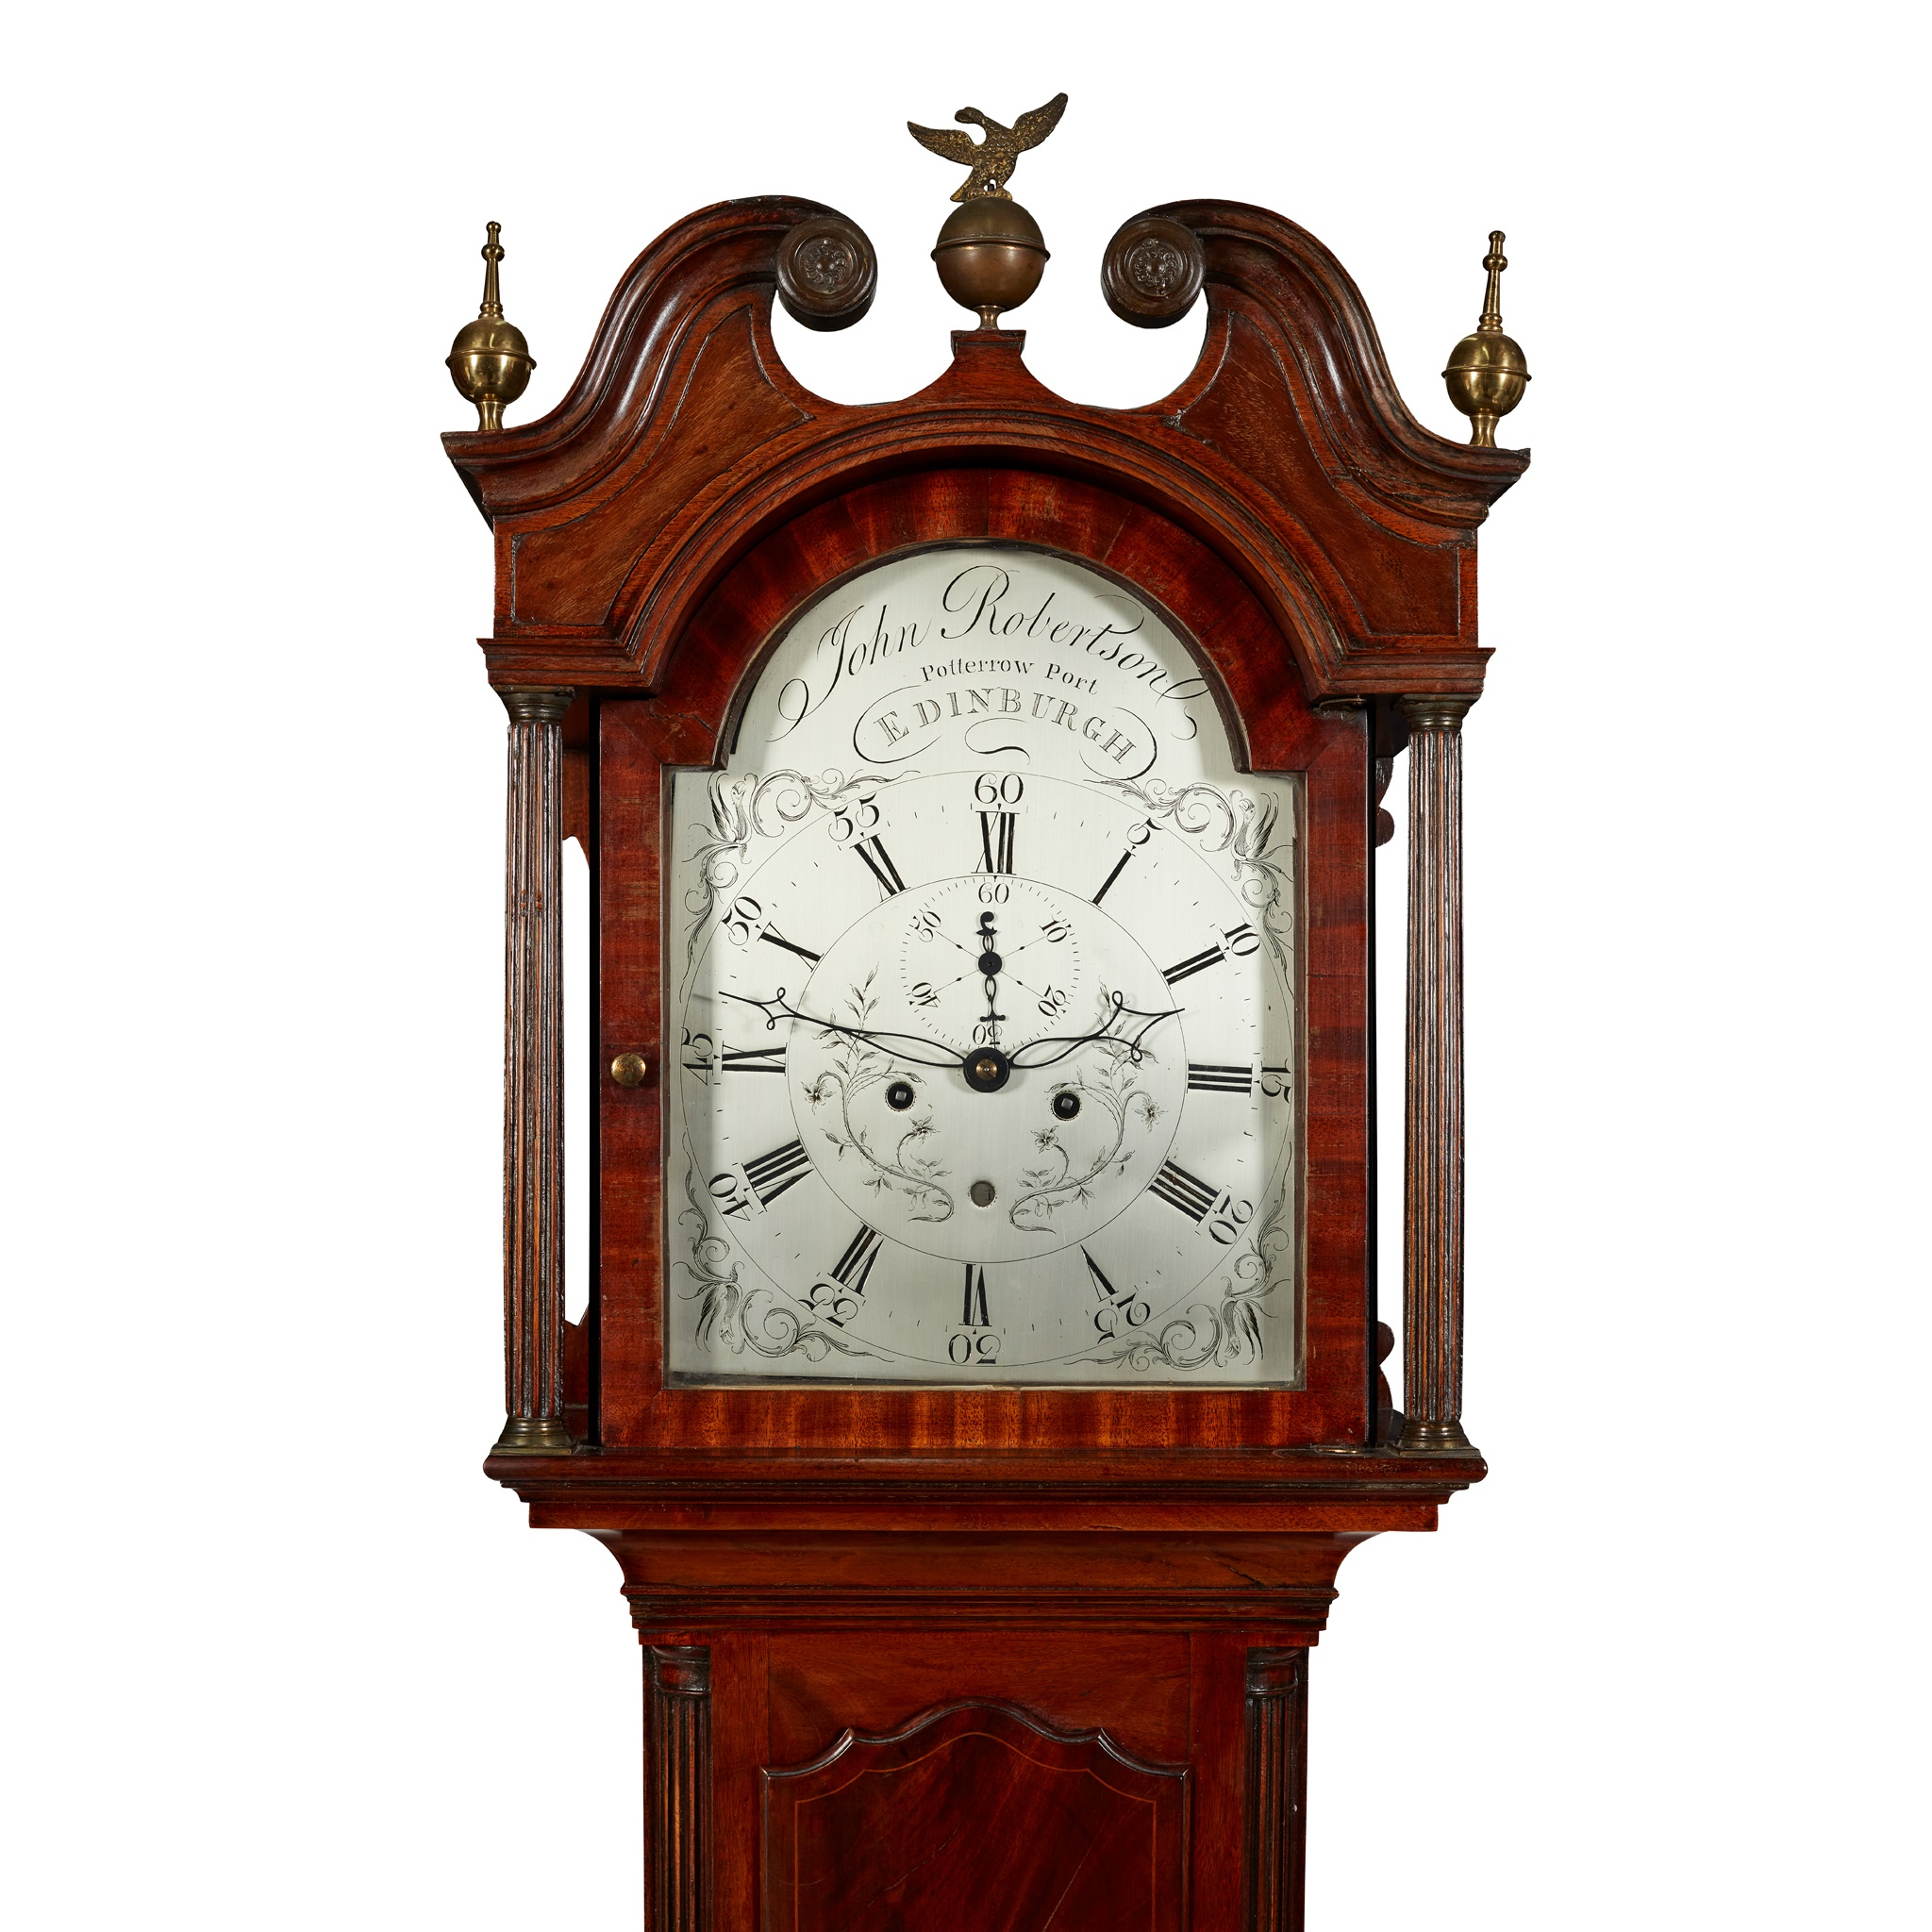 SCOTTISH GEORGE III MAHOGANY AND LINE INLAID LONGCASE CLOCK, BY JOHN ROBERTSON, EDINBURGH EARLY - Image 2 of 2